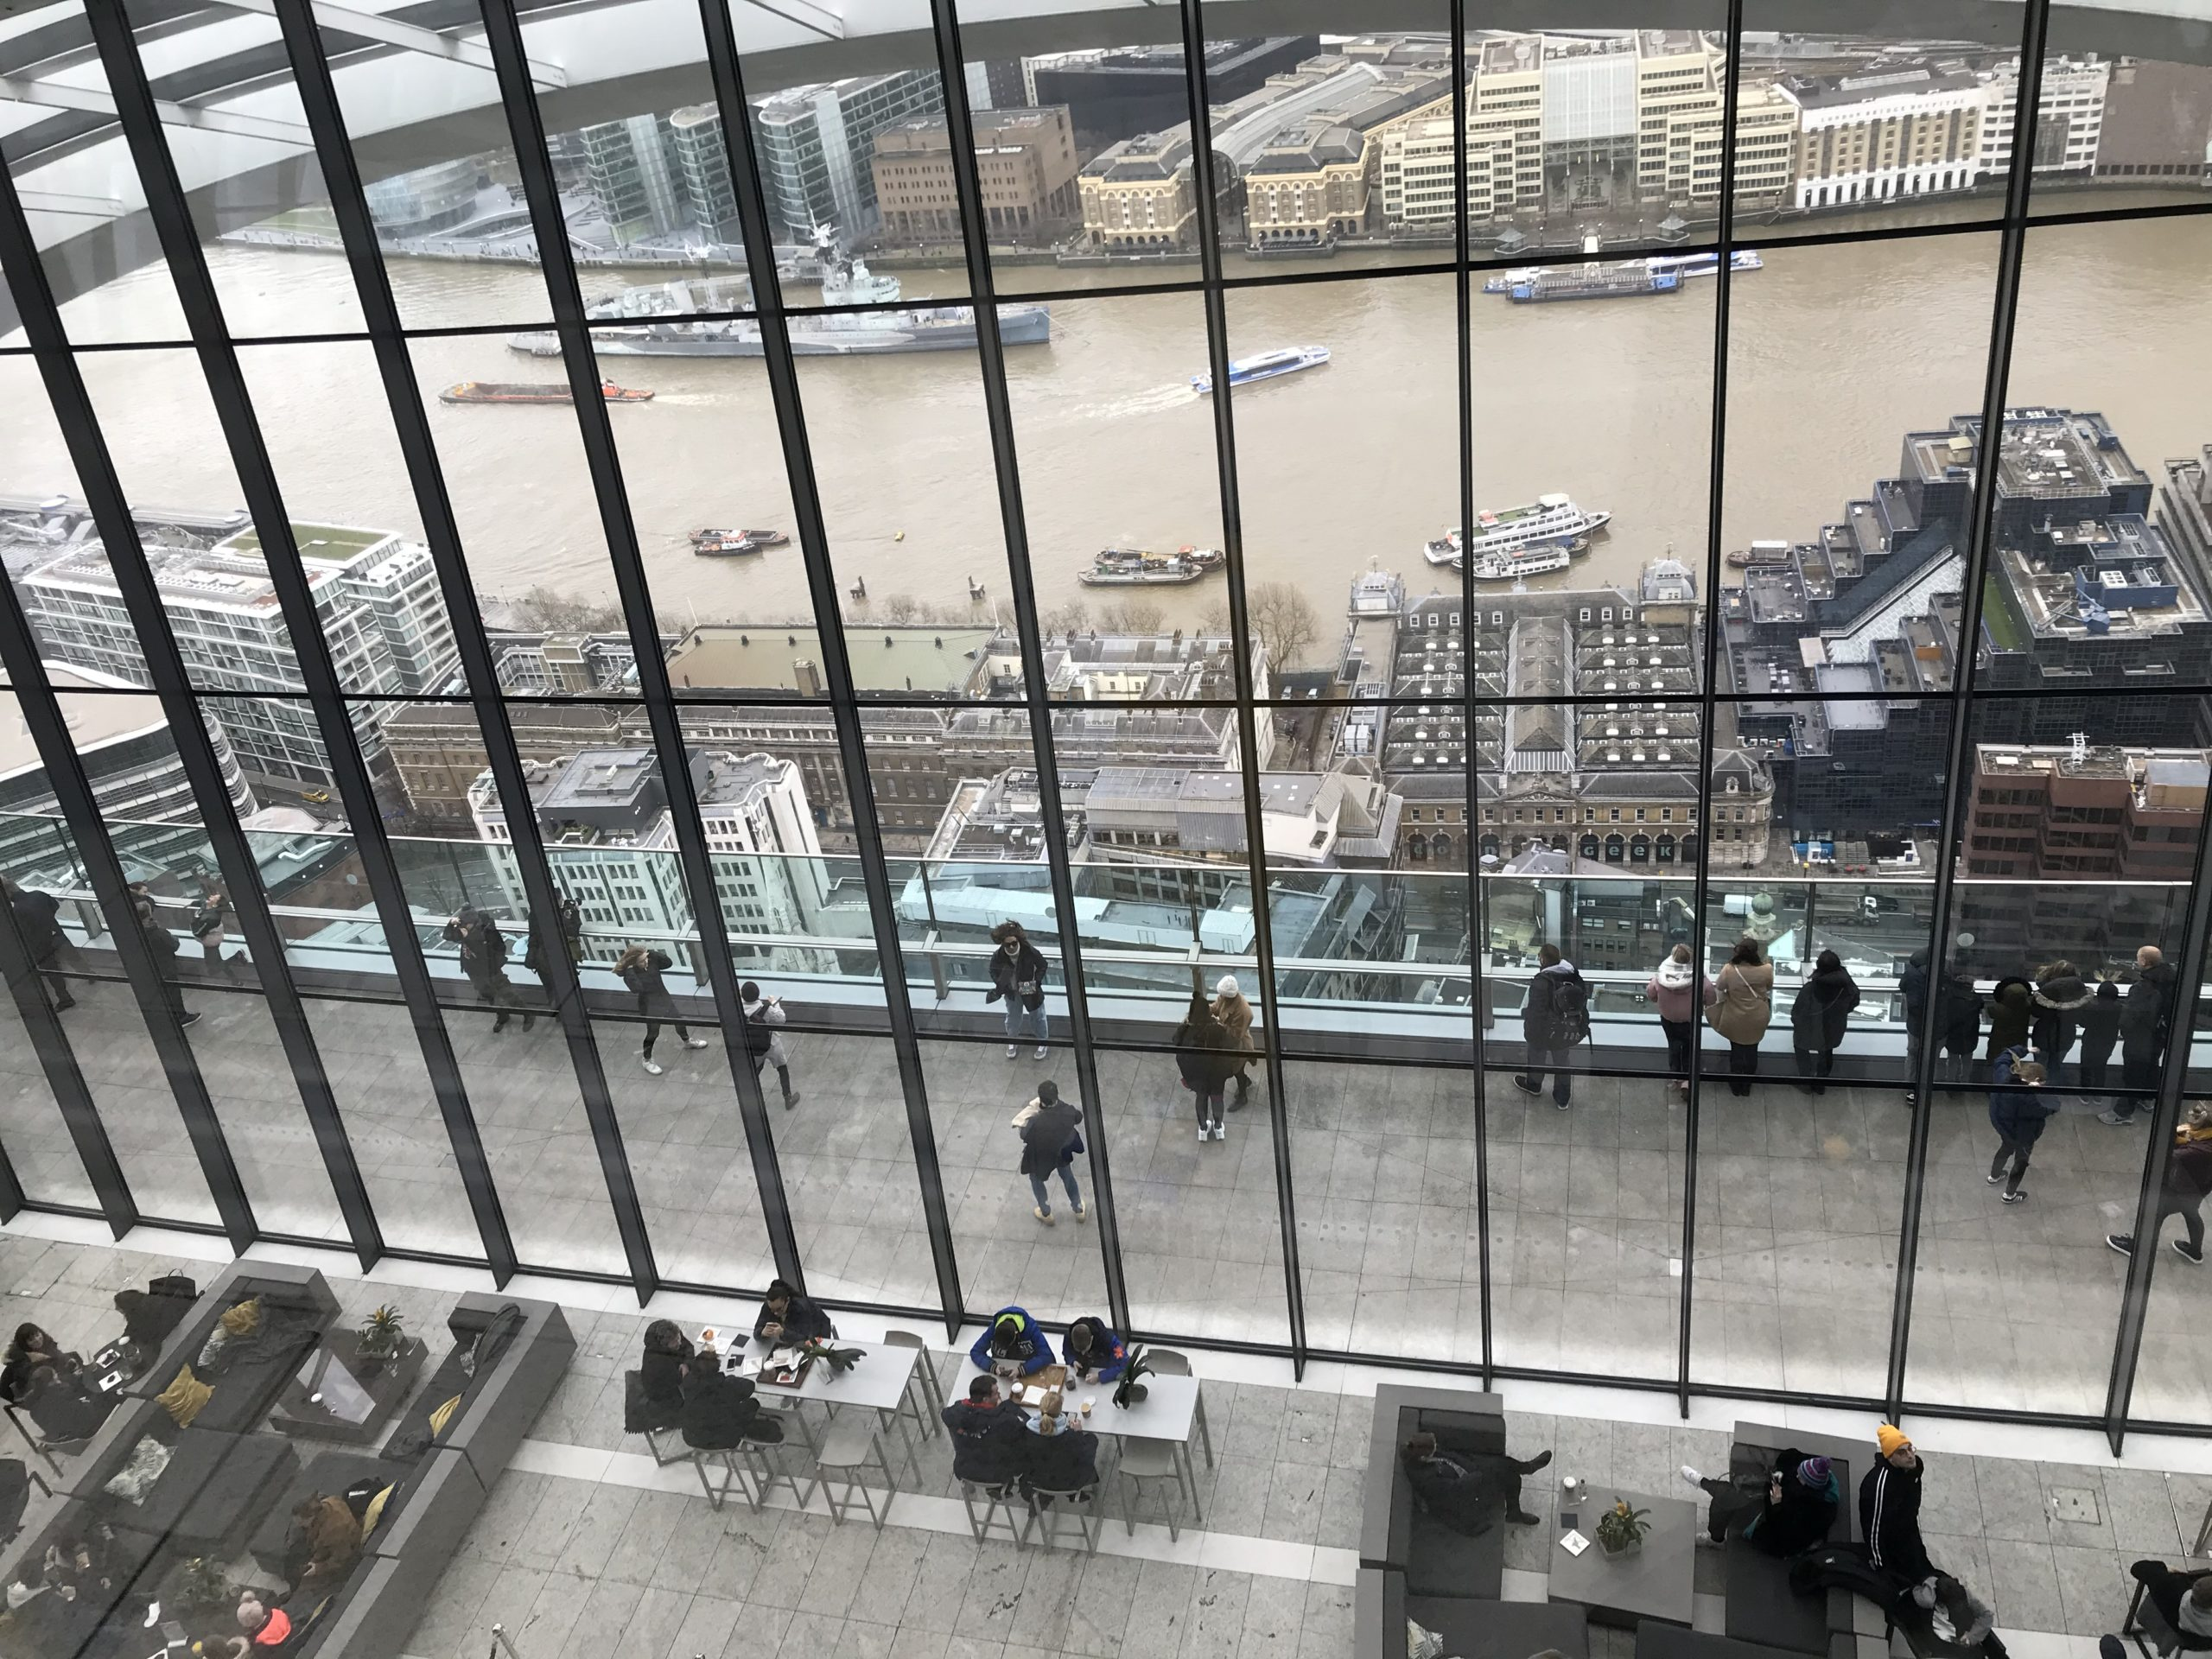 People can enjoy stunning views from 20 Fenchurch Street, otherwise known as the 'Walkie Talkie' skyscraper, in London.